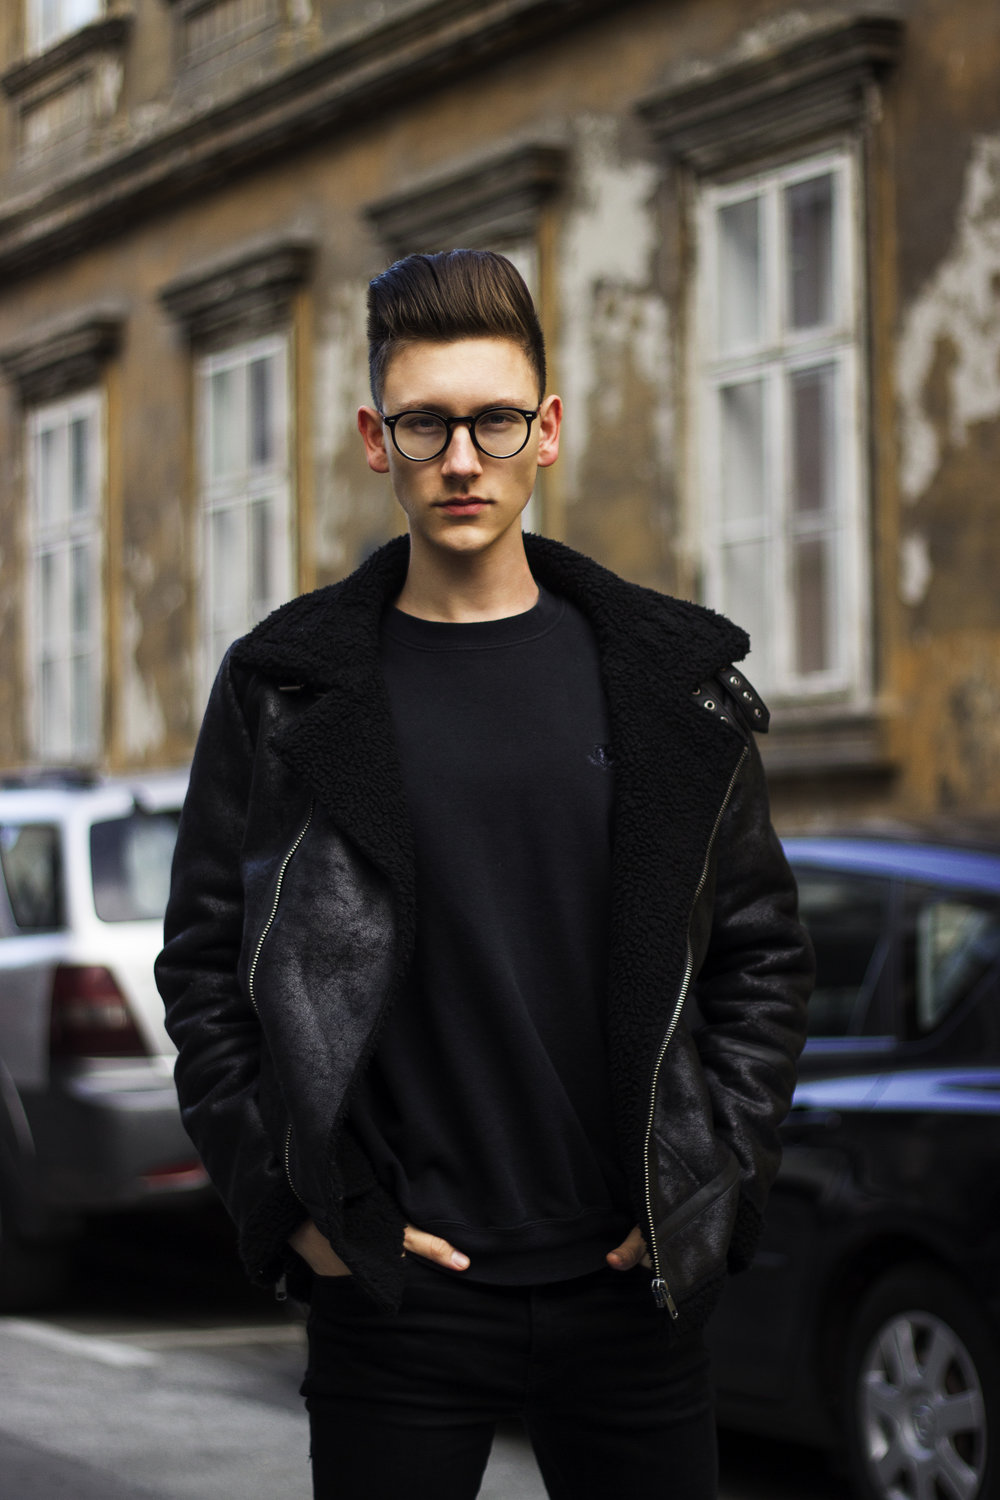 luka-lajic-expensive-reality-hm-mens-fashion-croatia-blogger.jpg